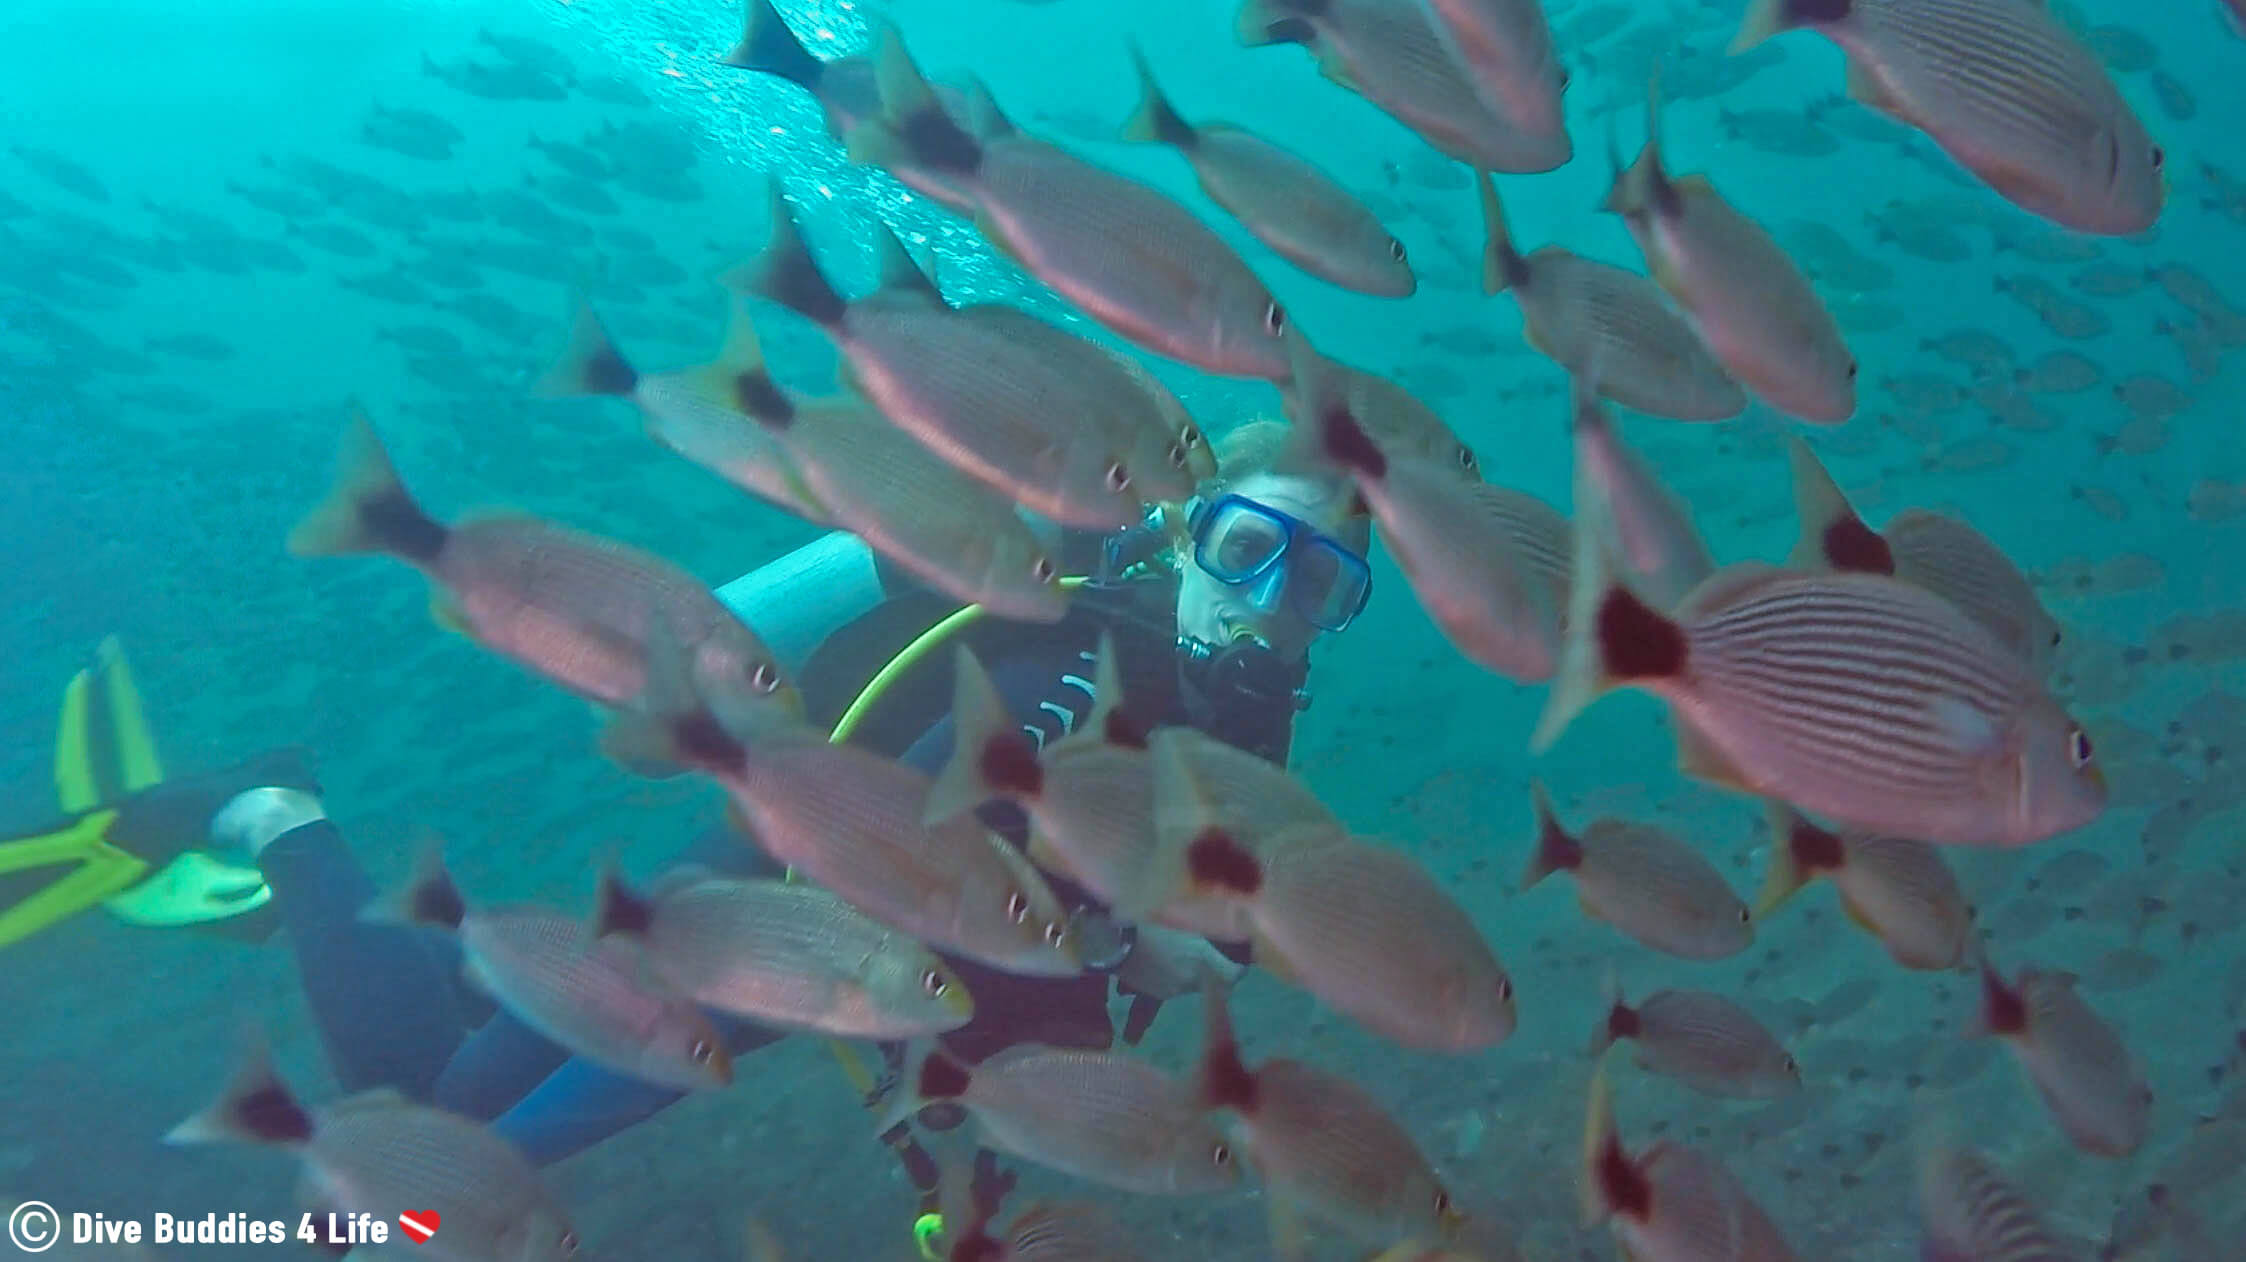 Scuba Diver Ali Underwater In Costa Rica Swimming Through A Large School Of Fish At The Catalina Islands, Central America